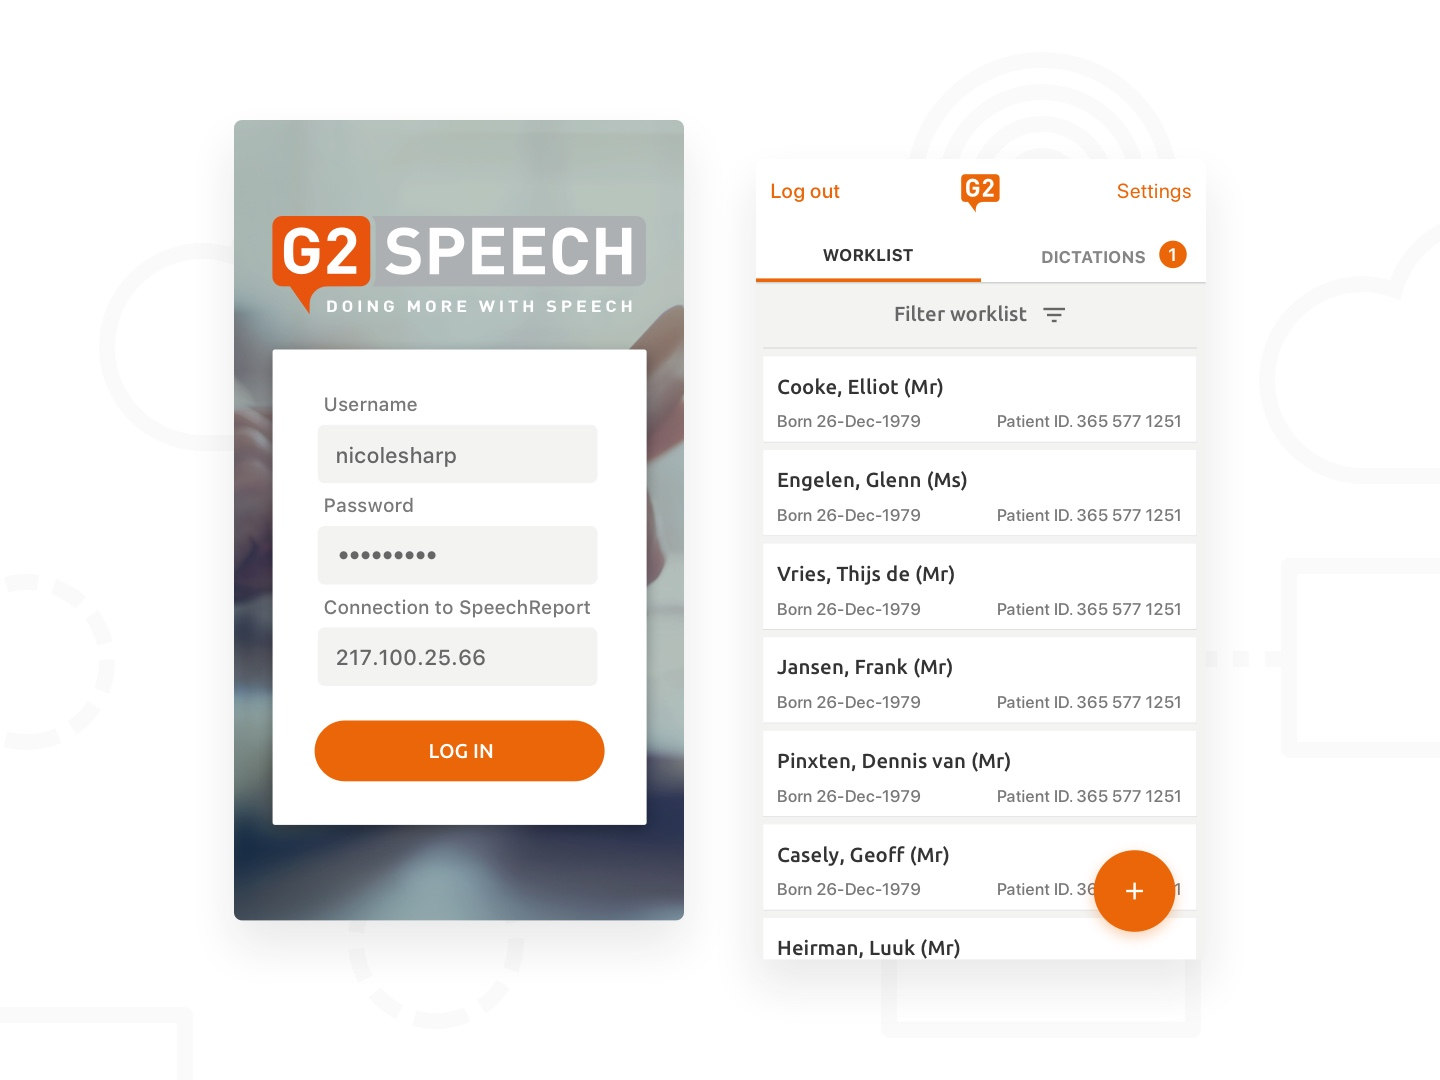 G2 Speech UI